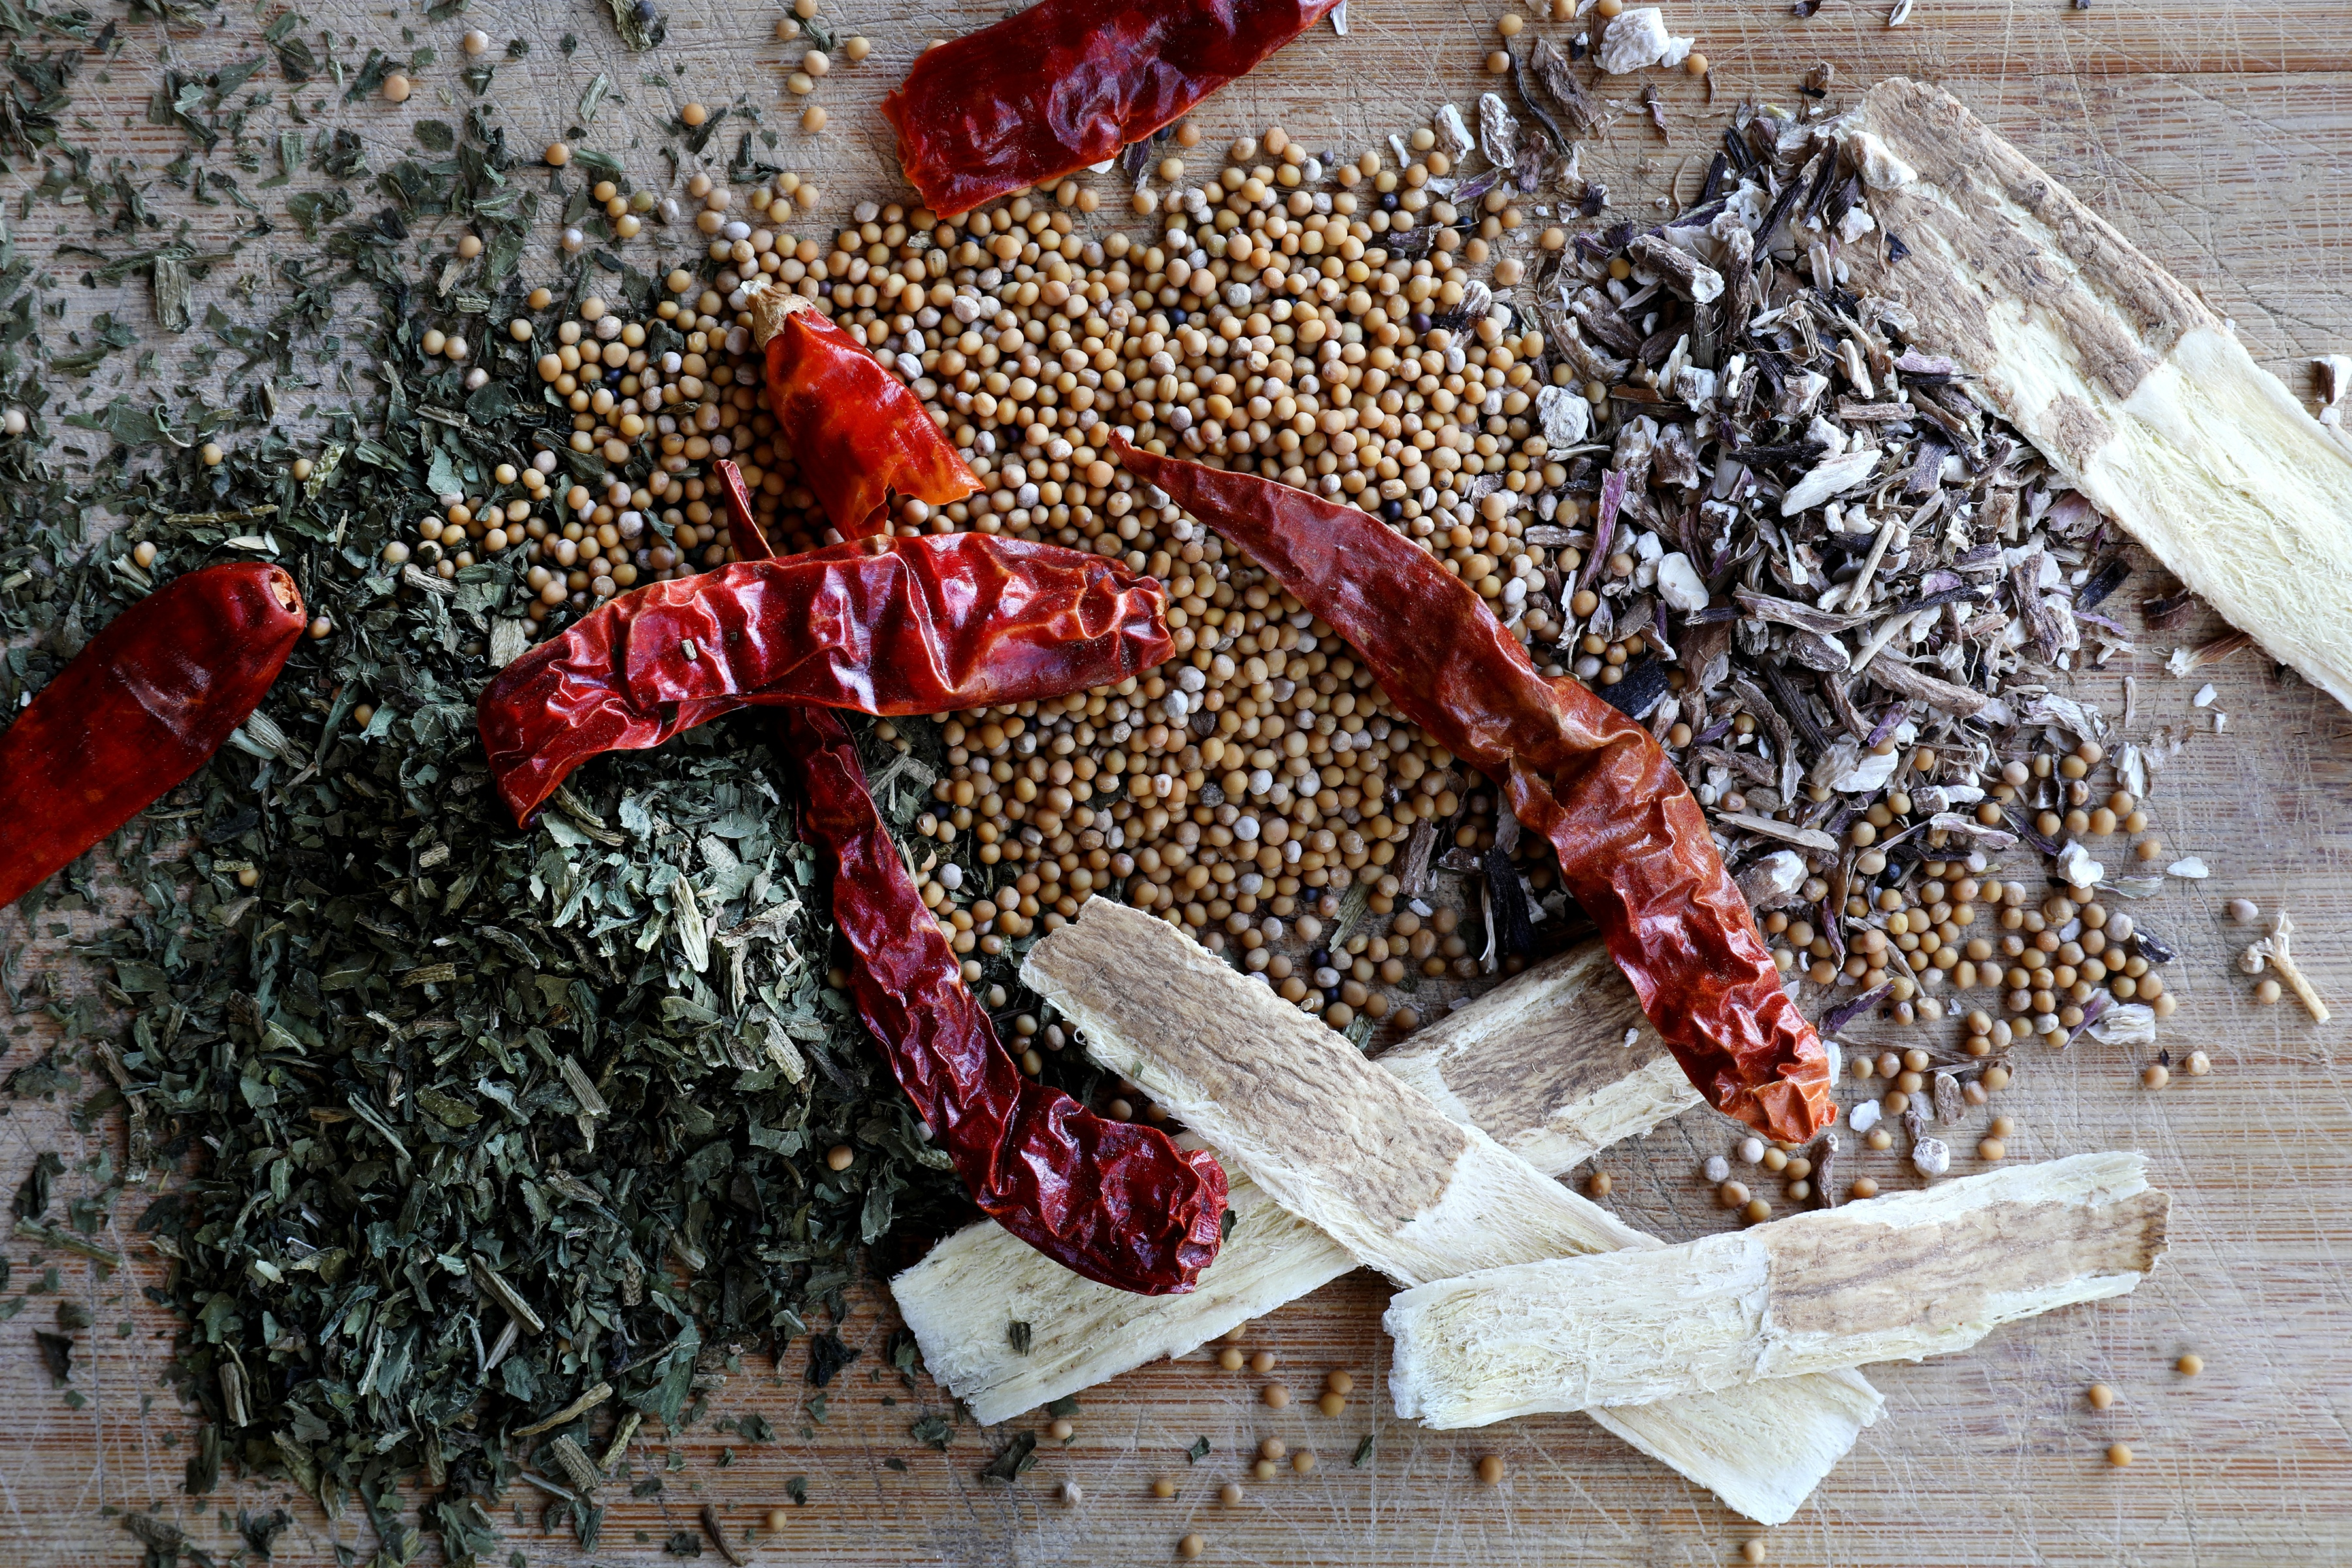 Vibrant colorful herbs, spices, and barks displayed on wood